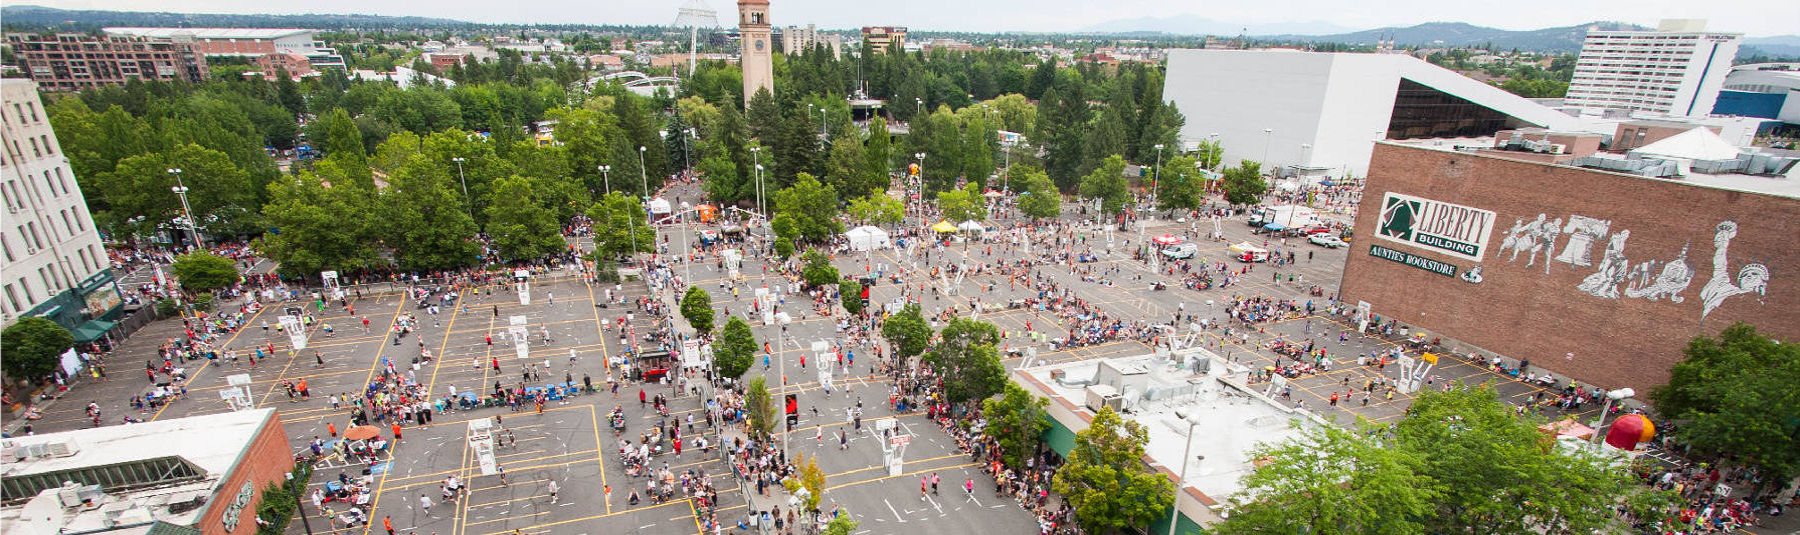 Spokane and Coeur d'Alene host Hoopfest and Ironman this weekend.